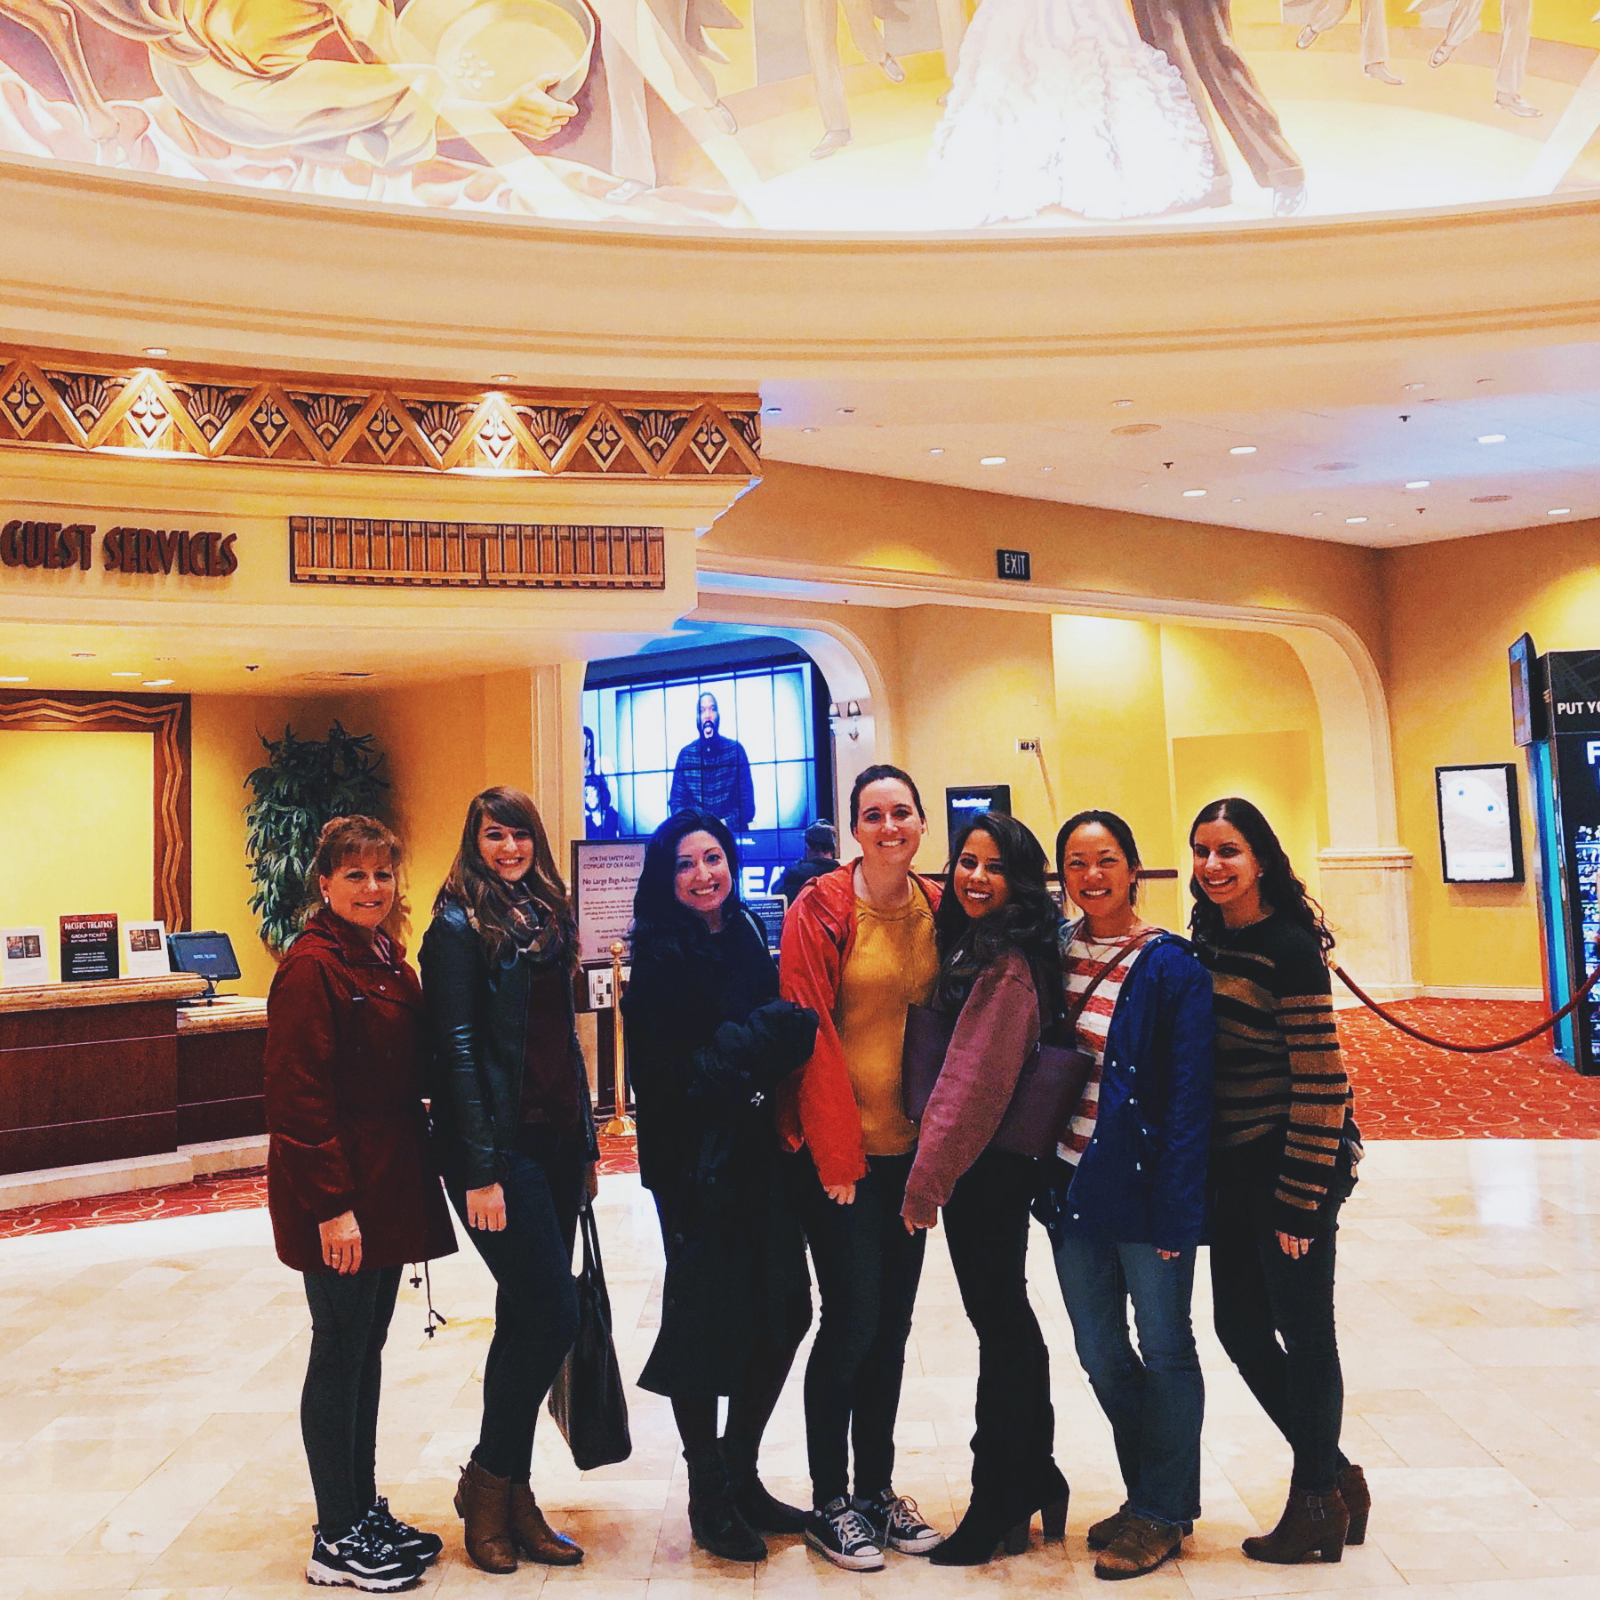 Group of girls in the lobby of a movie theater